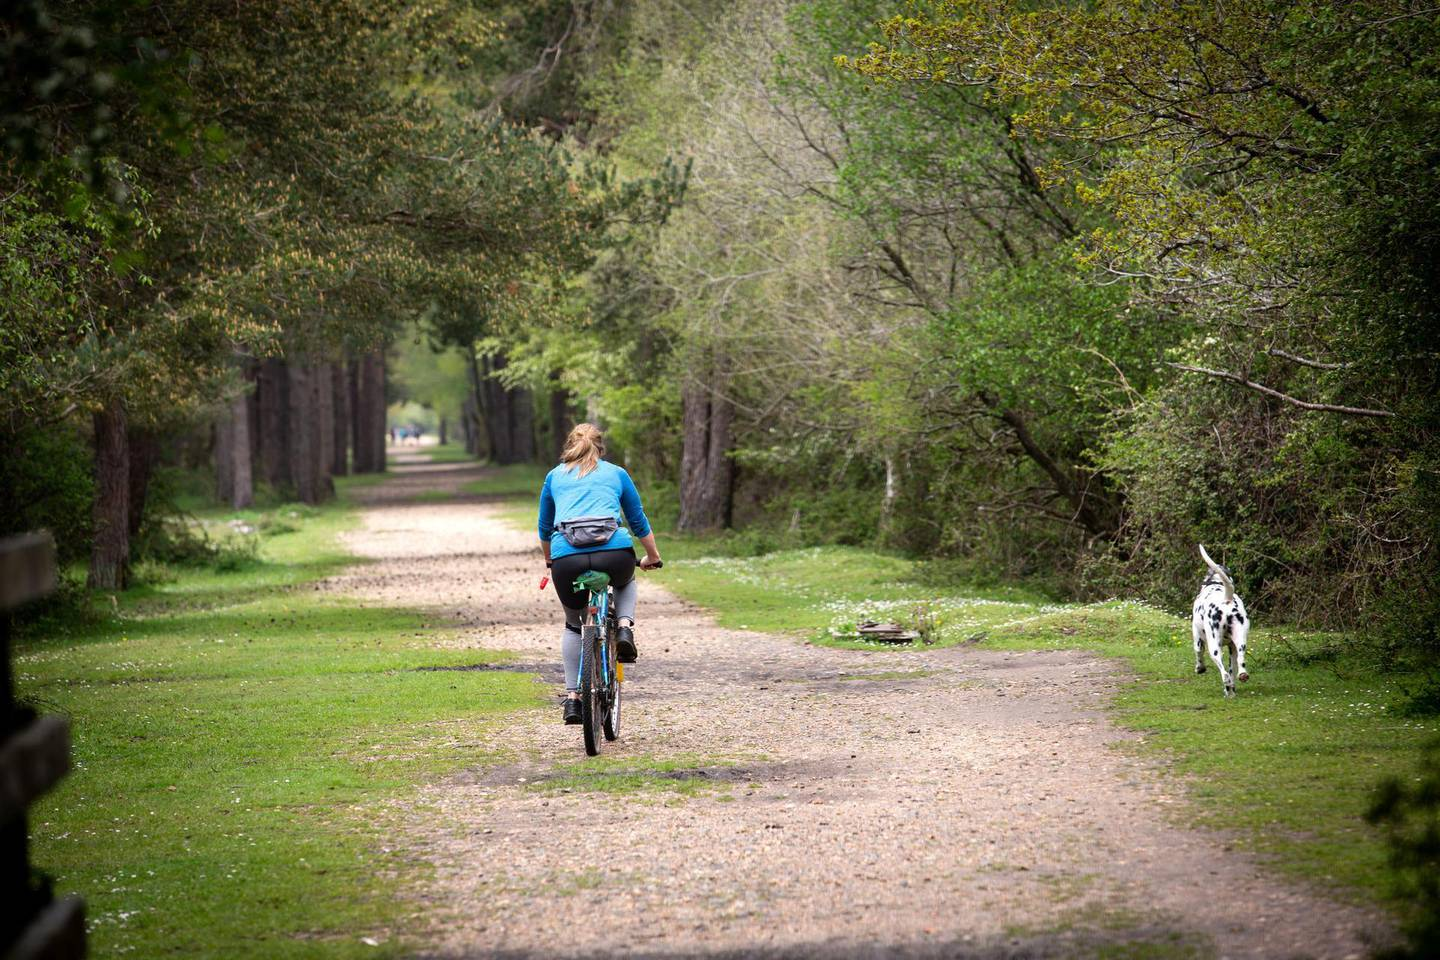 Paul Peachey feature on reinstating old railway lines, including the line the line in the New Forrest near Holmsley. The old train line to Holmsley is now a popular cycle track.